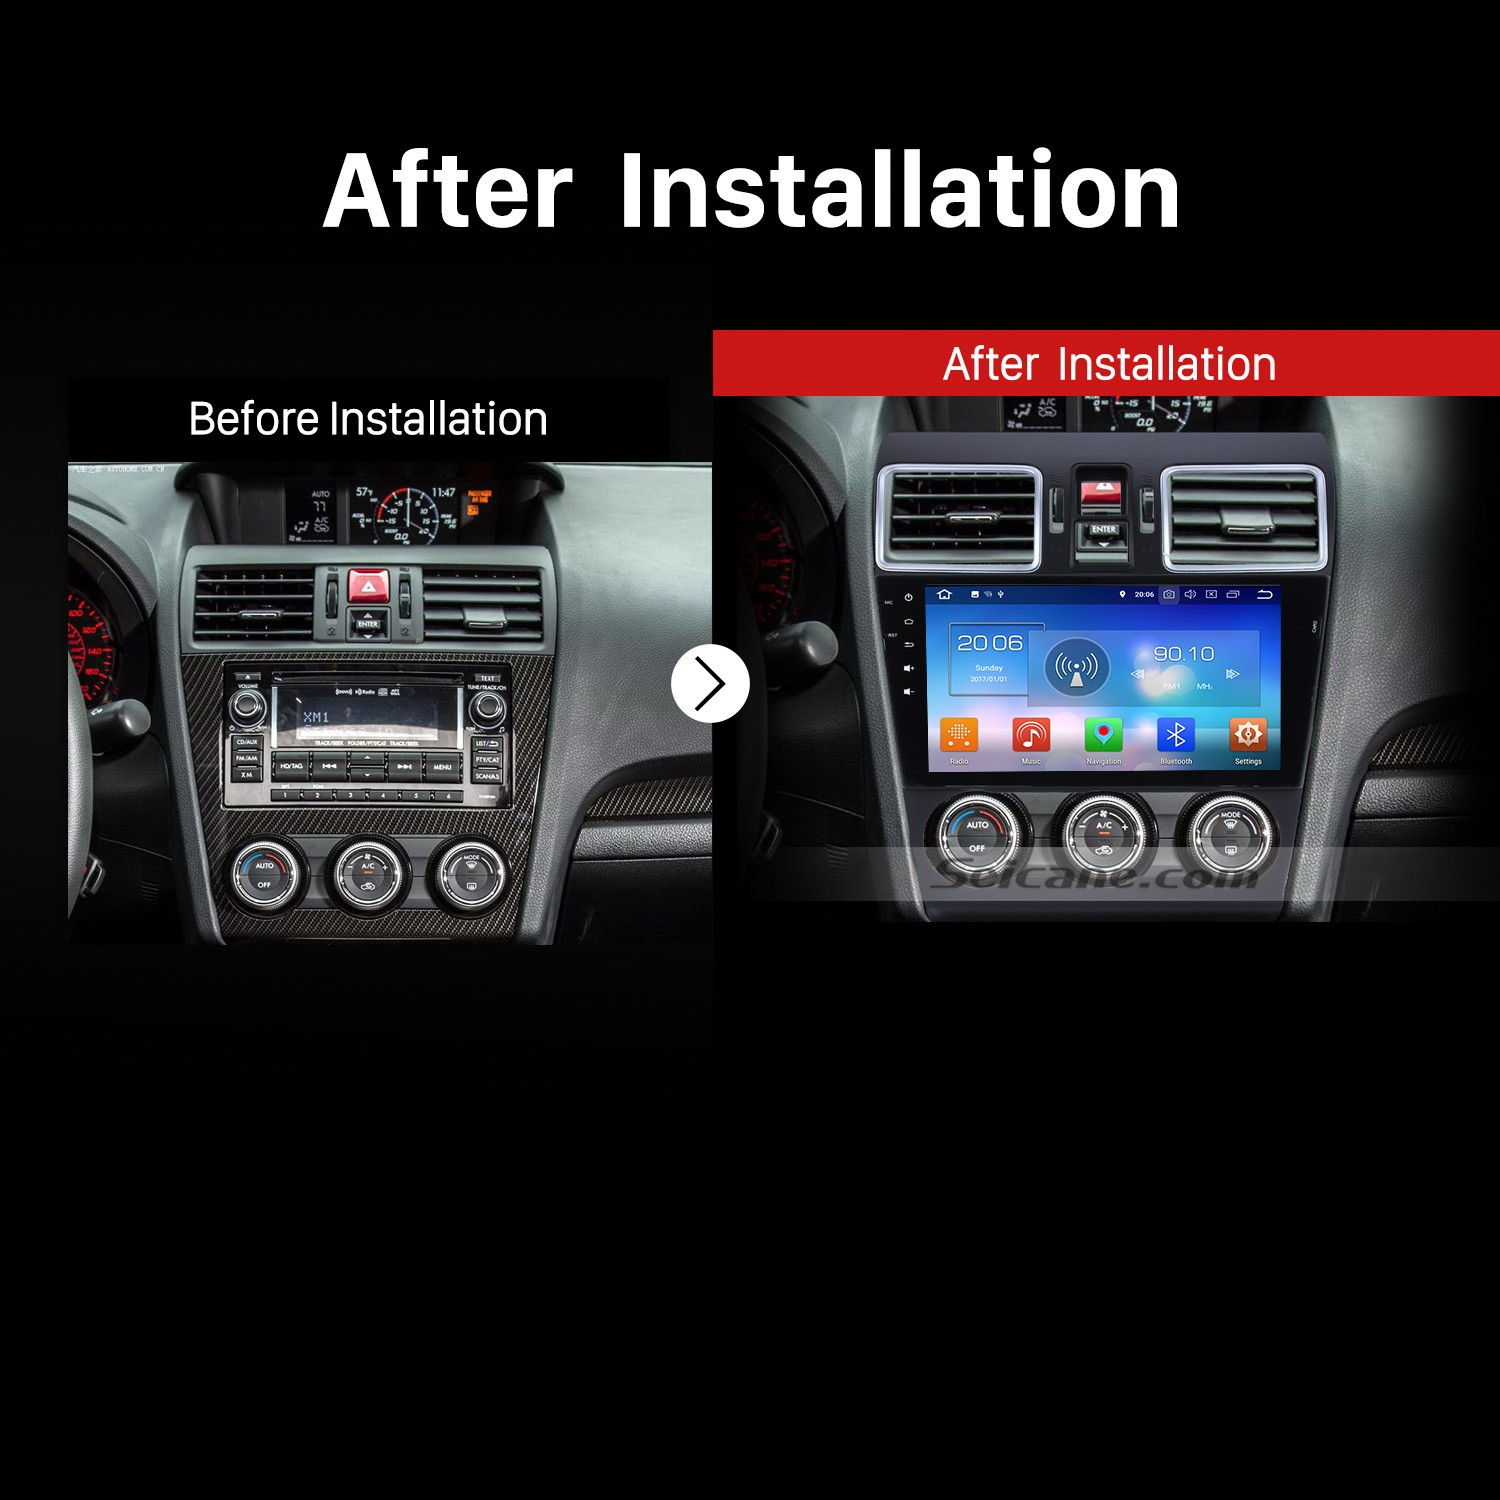 Subaru Forester Car Radio After Installation on backup camera installation